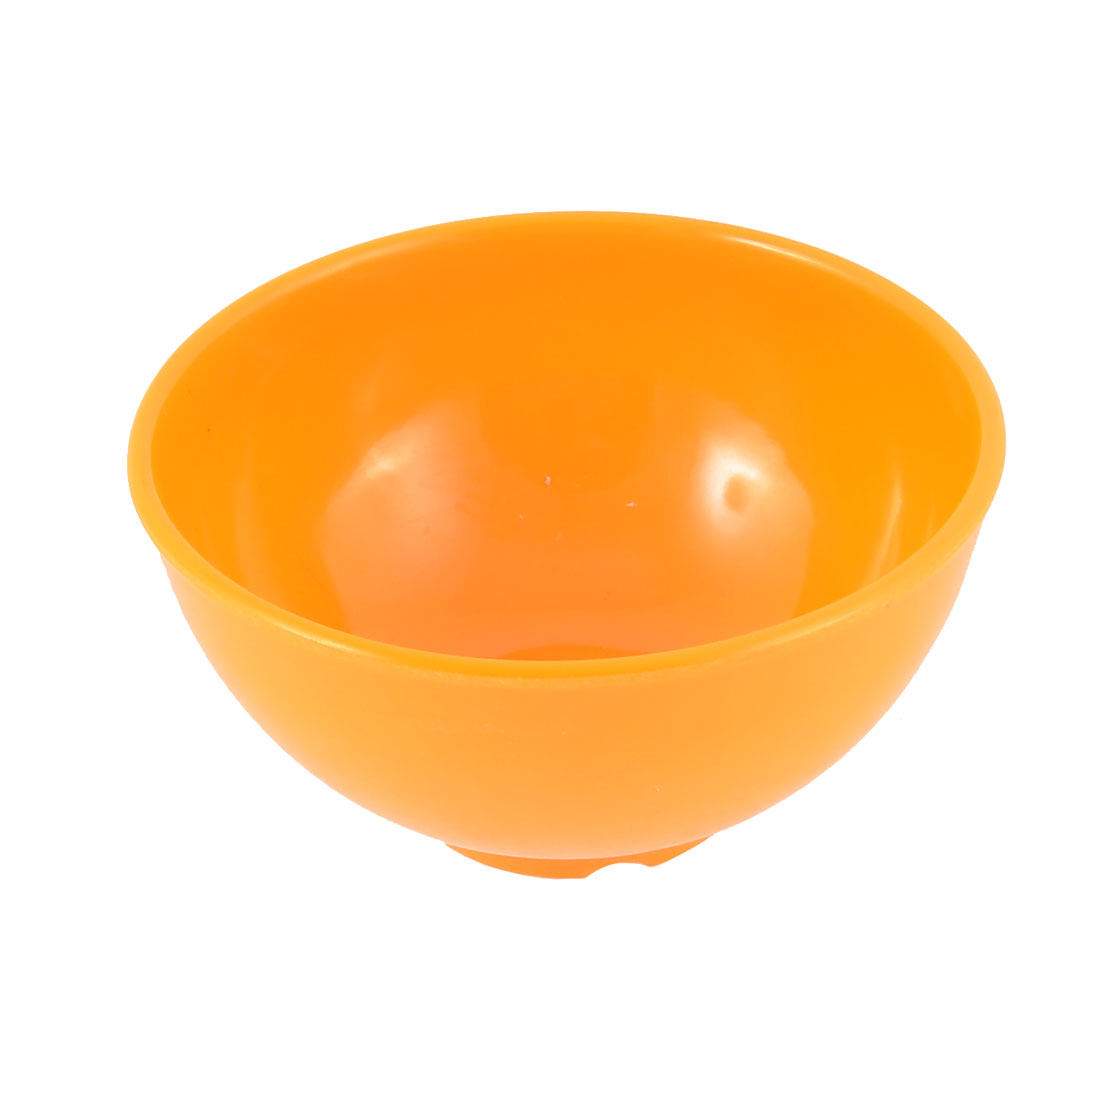 Household Kitchen Plastic Soup Porridge Food Rice Bowl Orange 11.5cm Dia